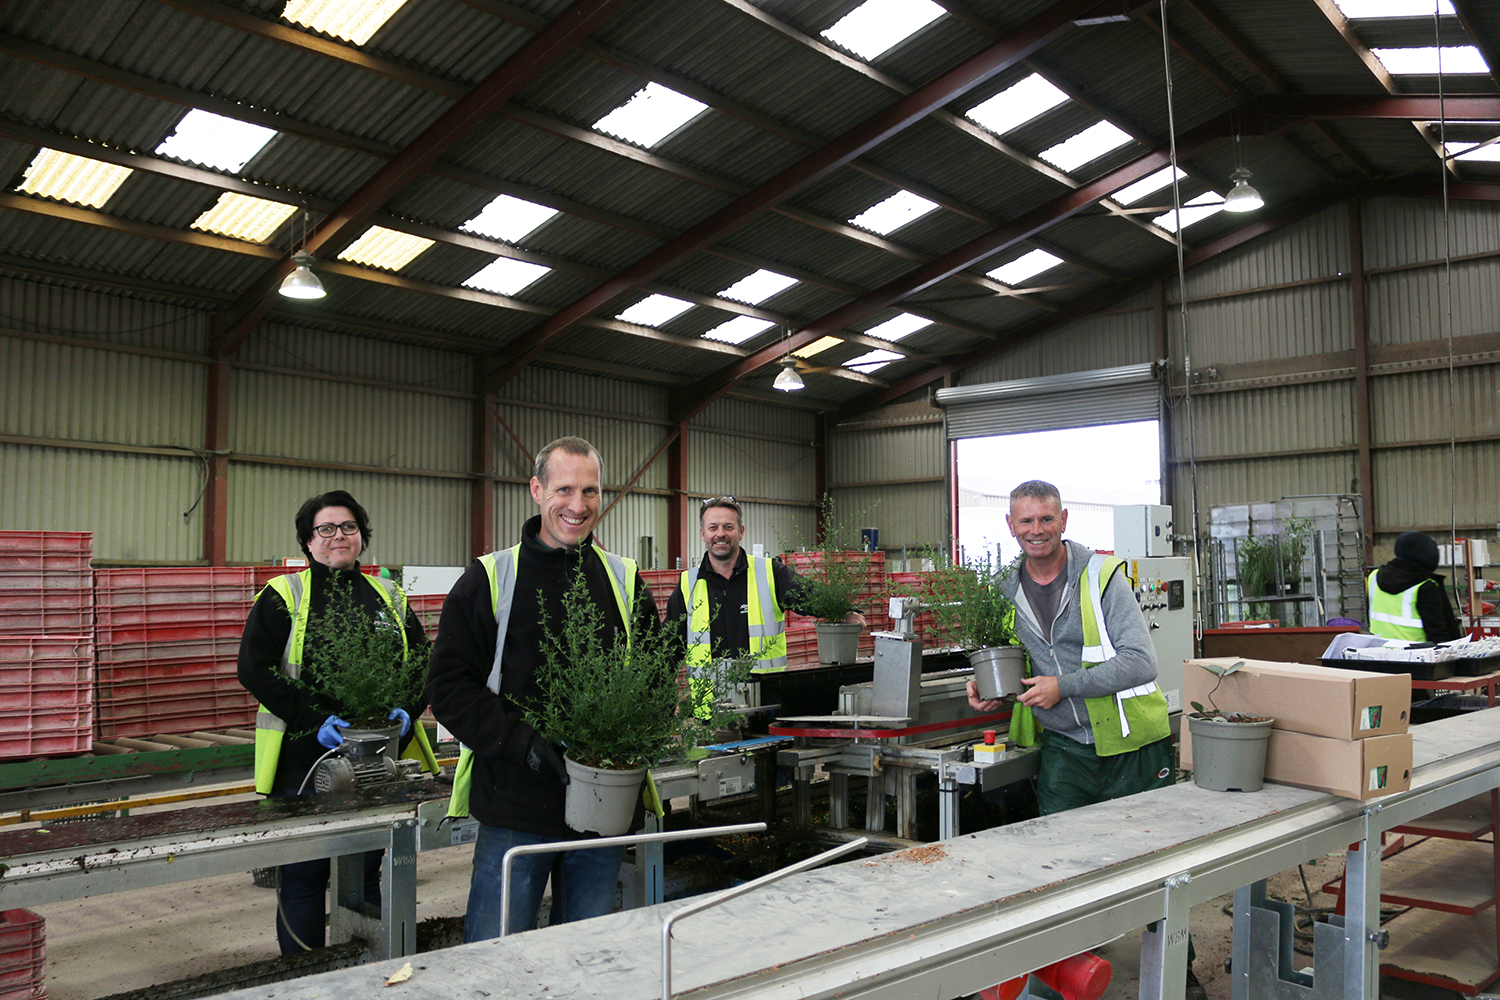 Garden Centre Sales Division celebrates record-breaking year